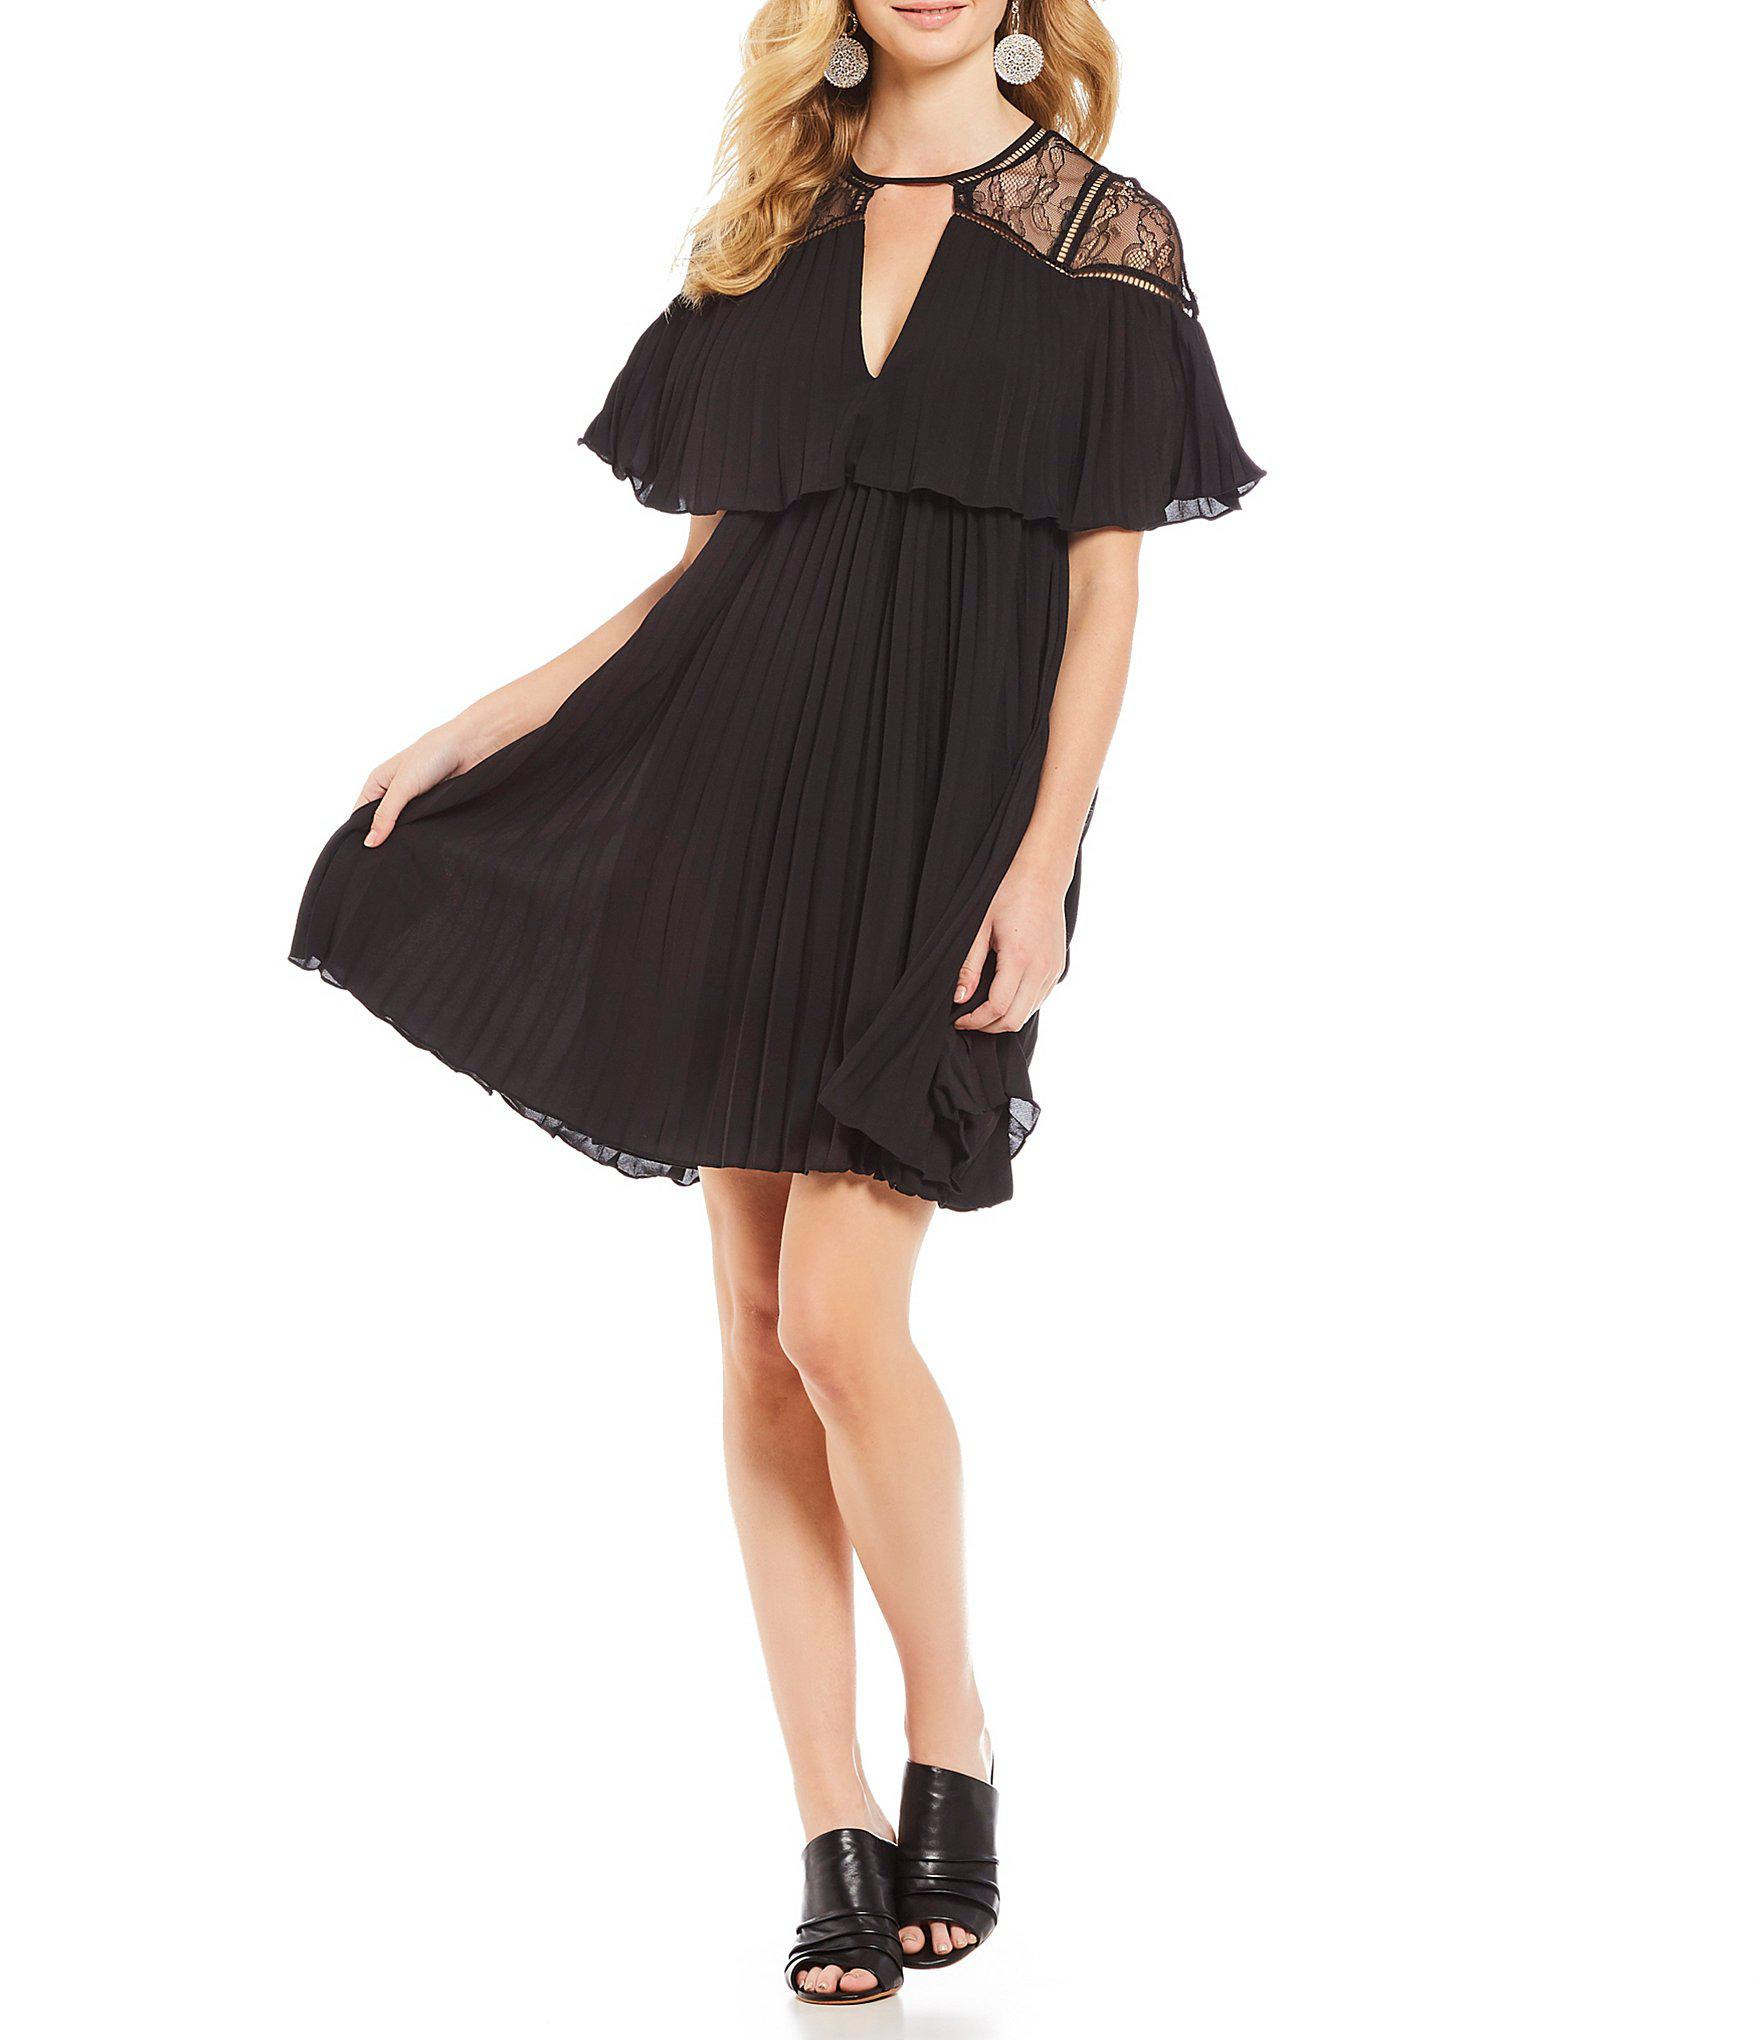 1bfa376c0f0 Gianni Bini Brie Trapeze Lace Cutout V-neck A-line Dress in Black - Lyst